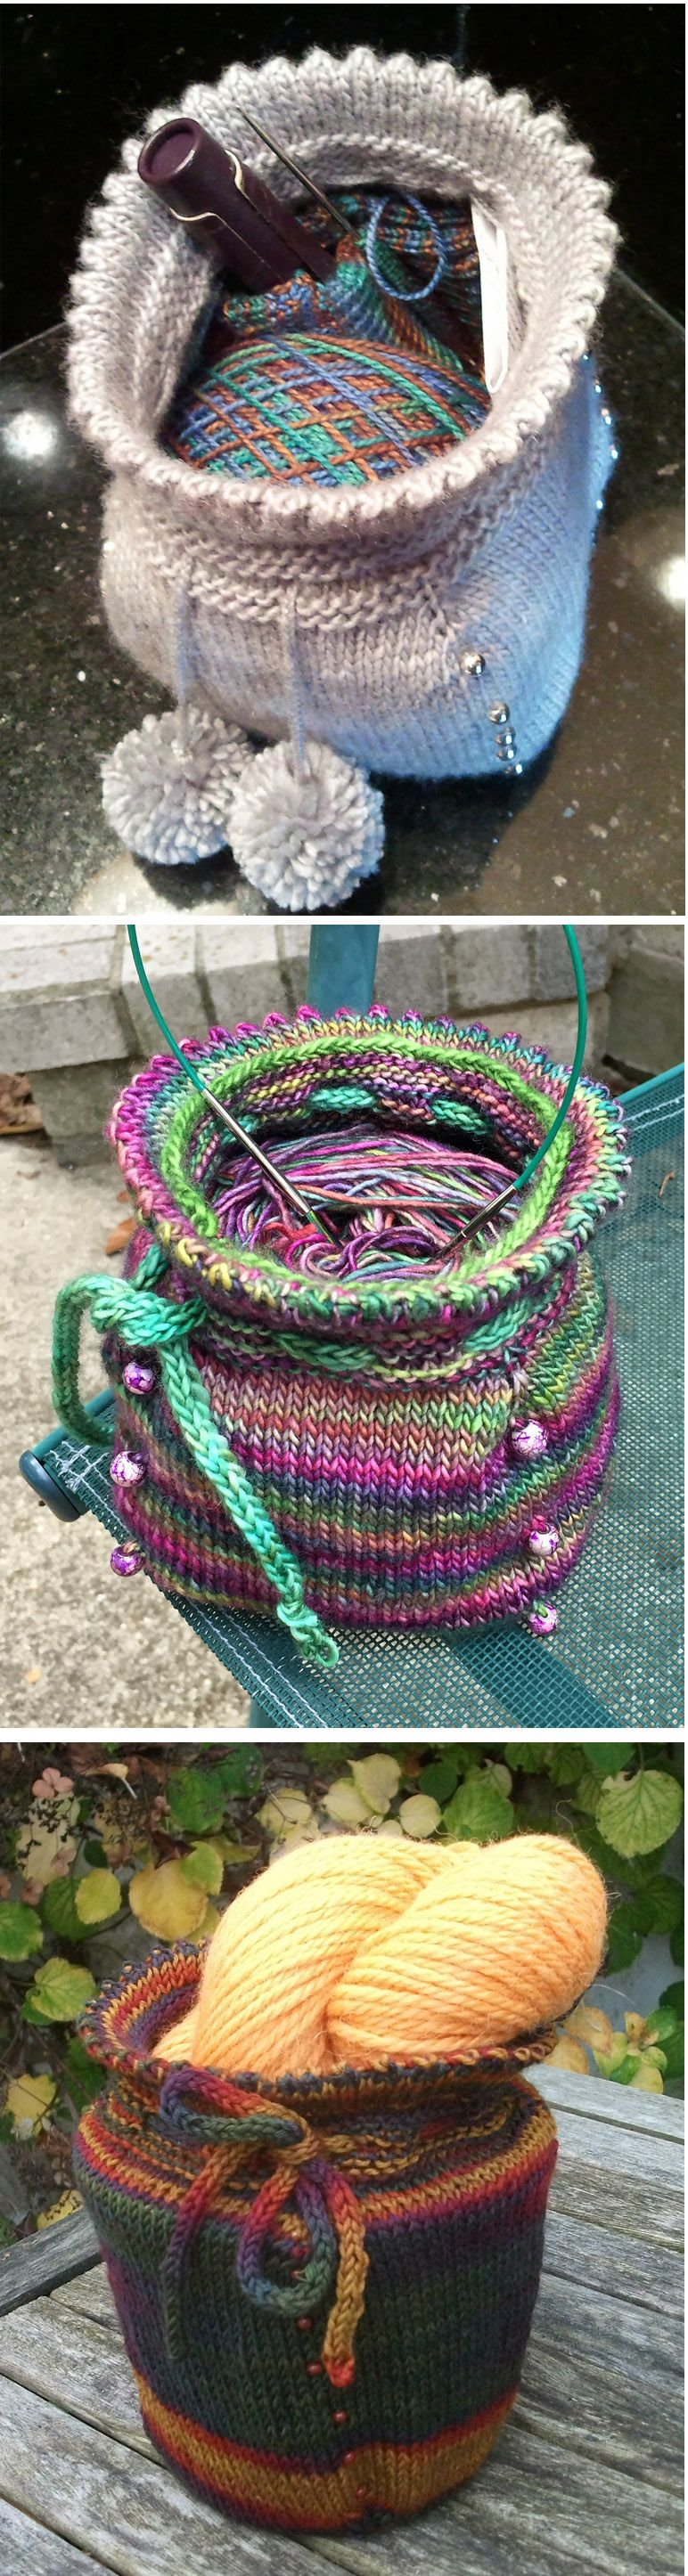 Free Knitting Pattern for Sock Baggie - This small project bag ...